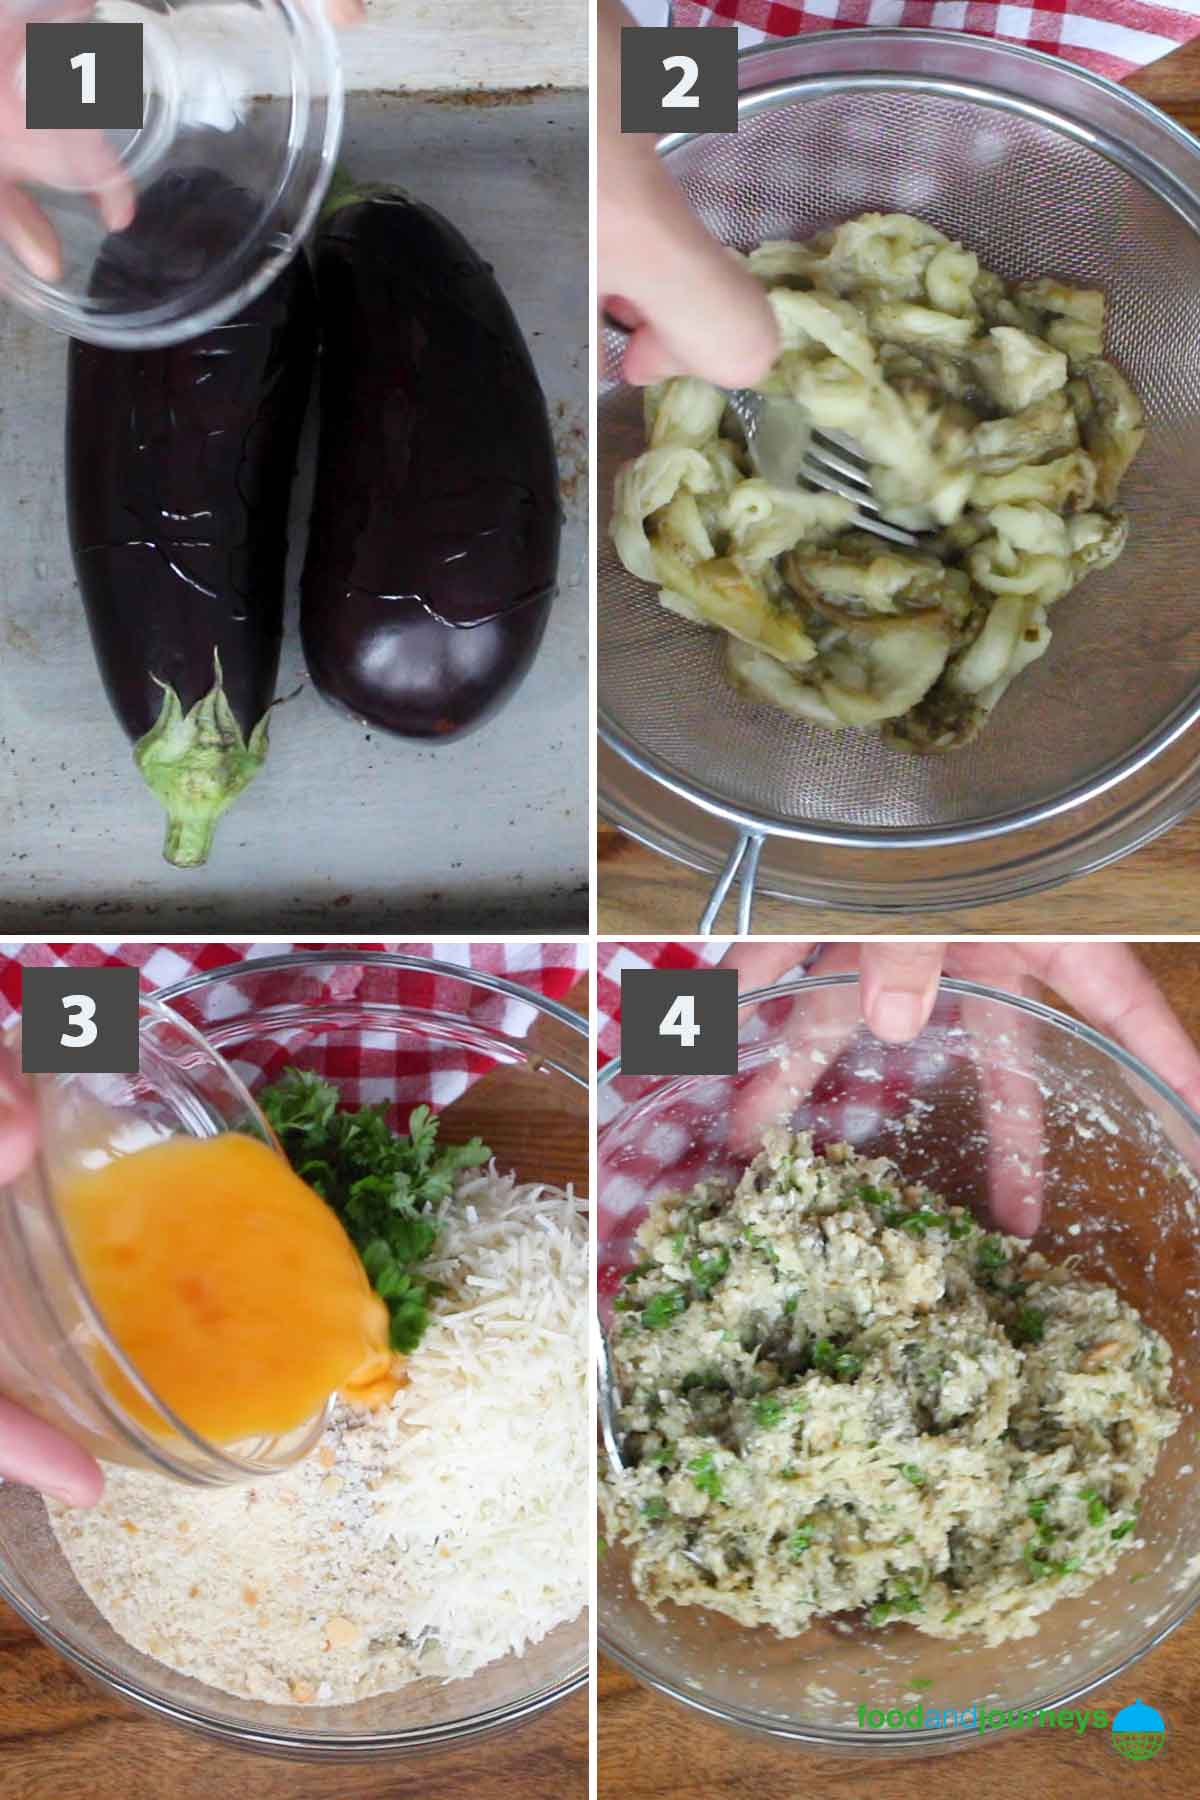 Updated first part of a collage of images showing step by step process on how to make eggplant meatballs.